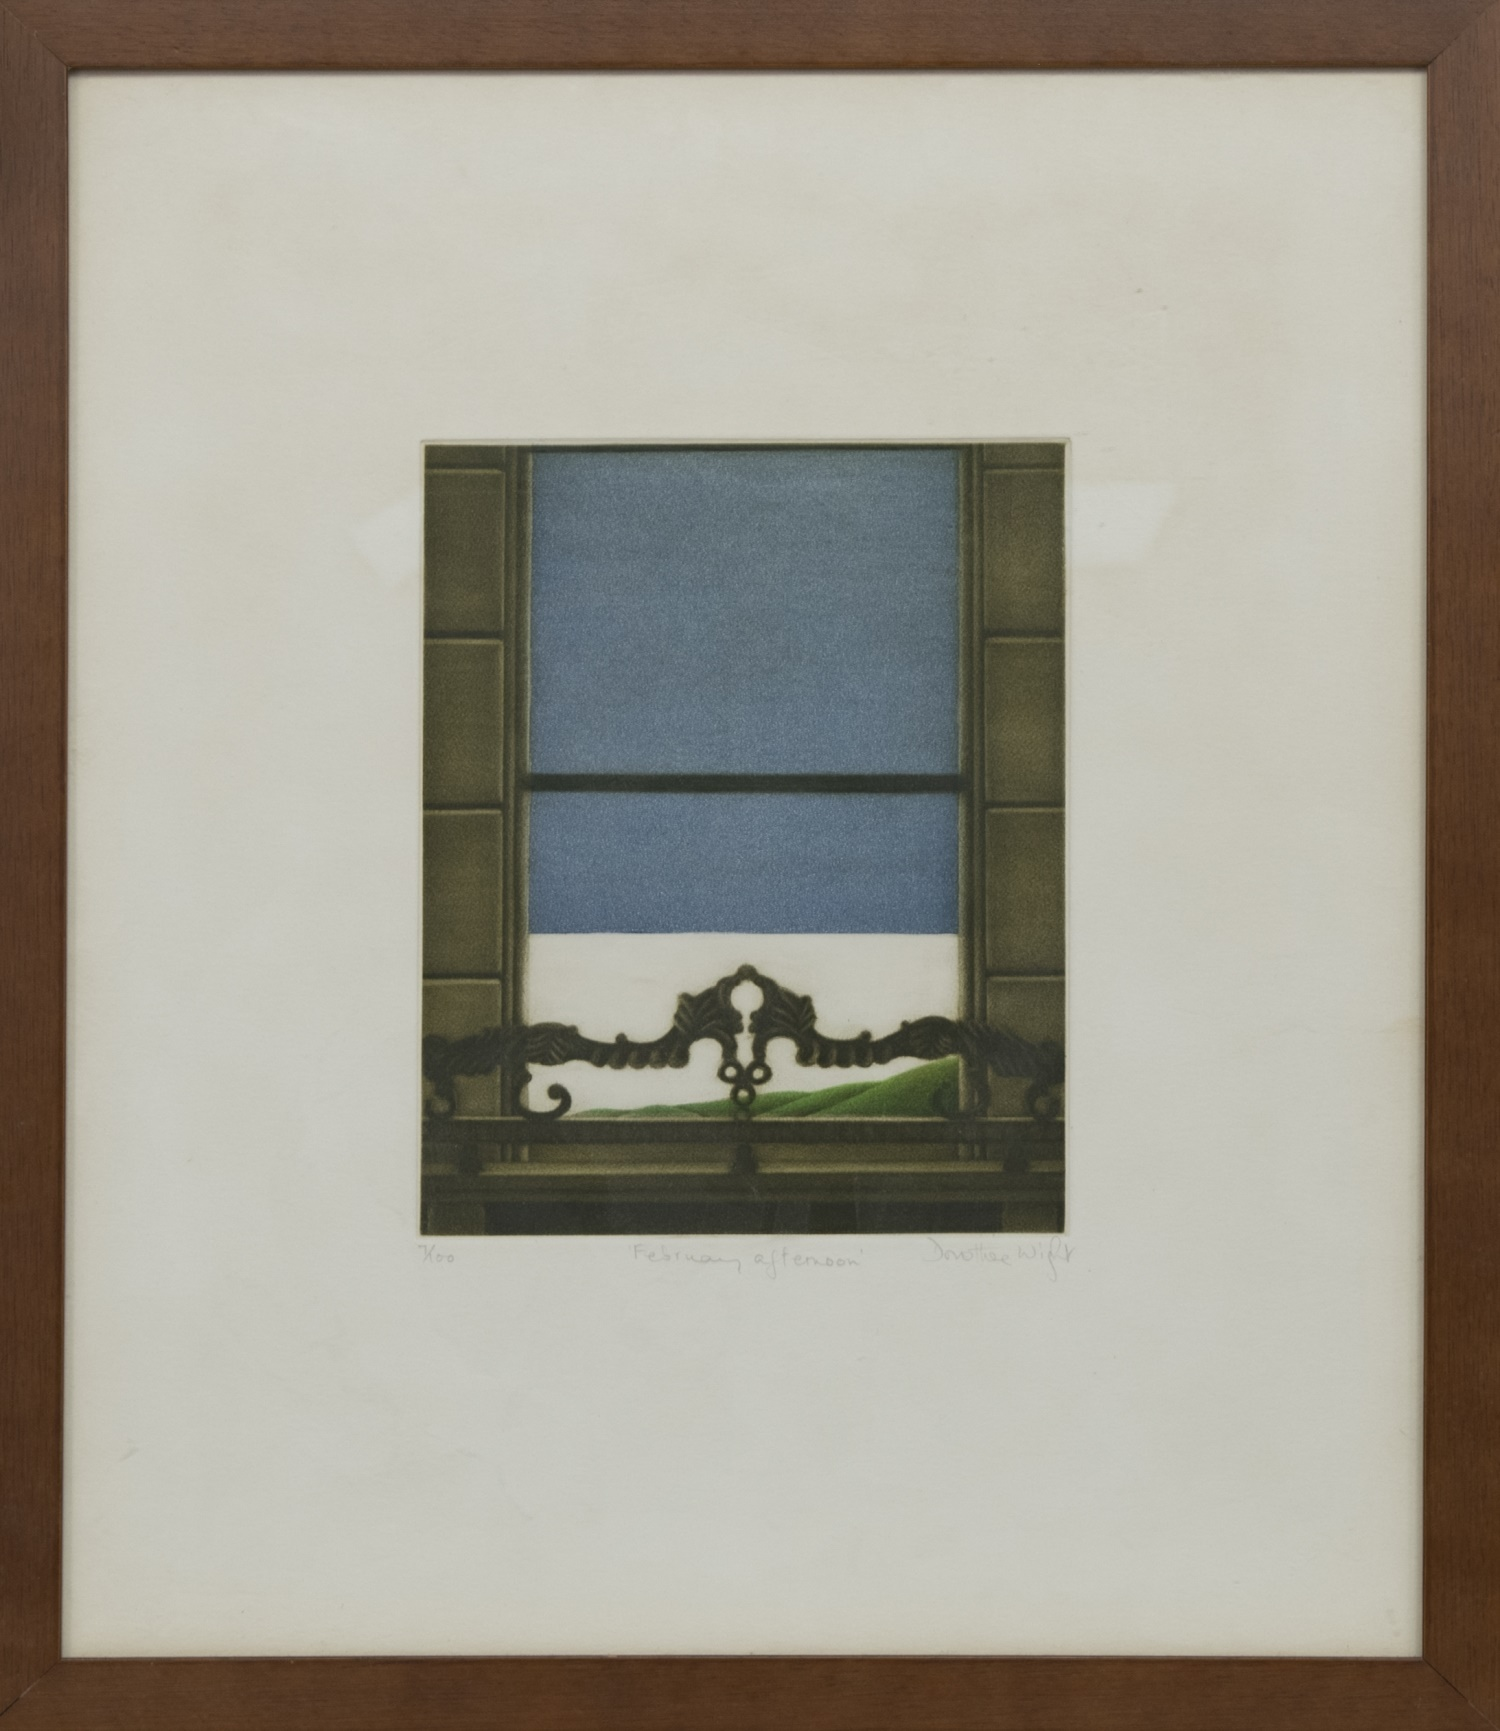 FEBRUARY AFTERNOON, A MEZZOTINT BY DOROTHEA WIGHT